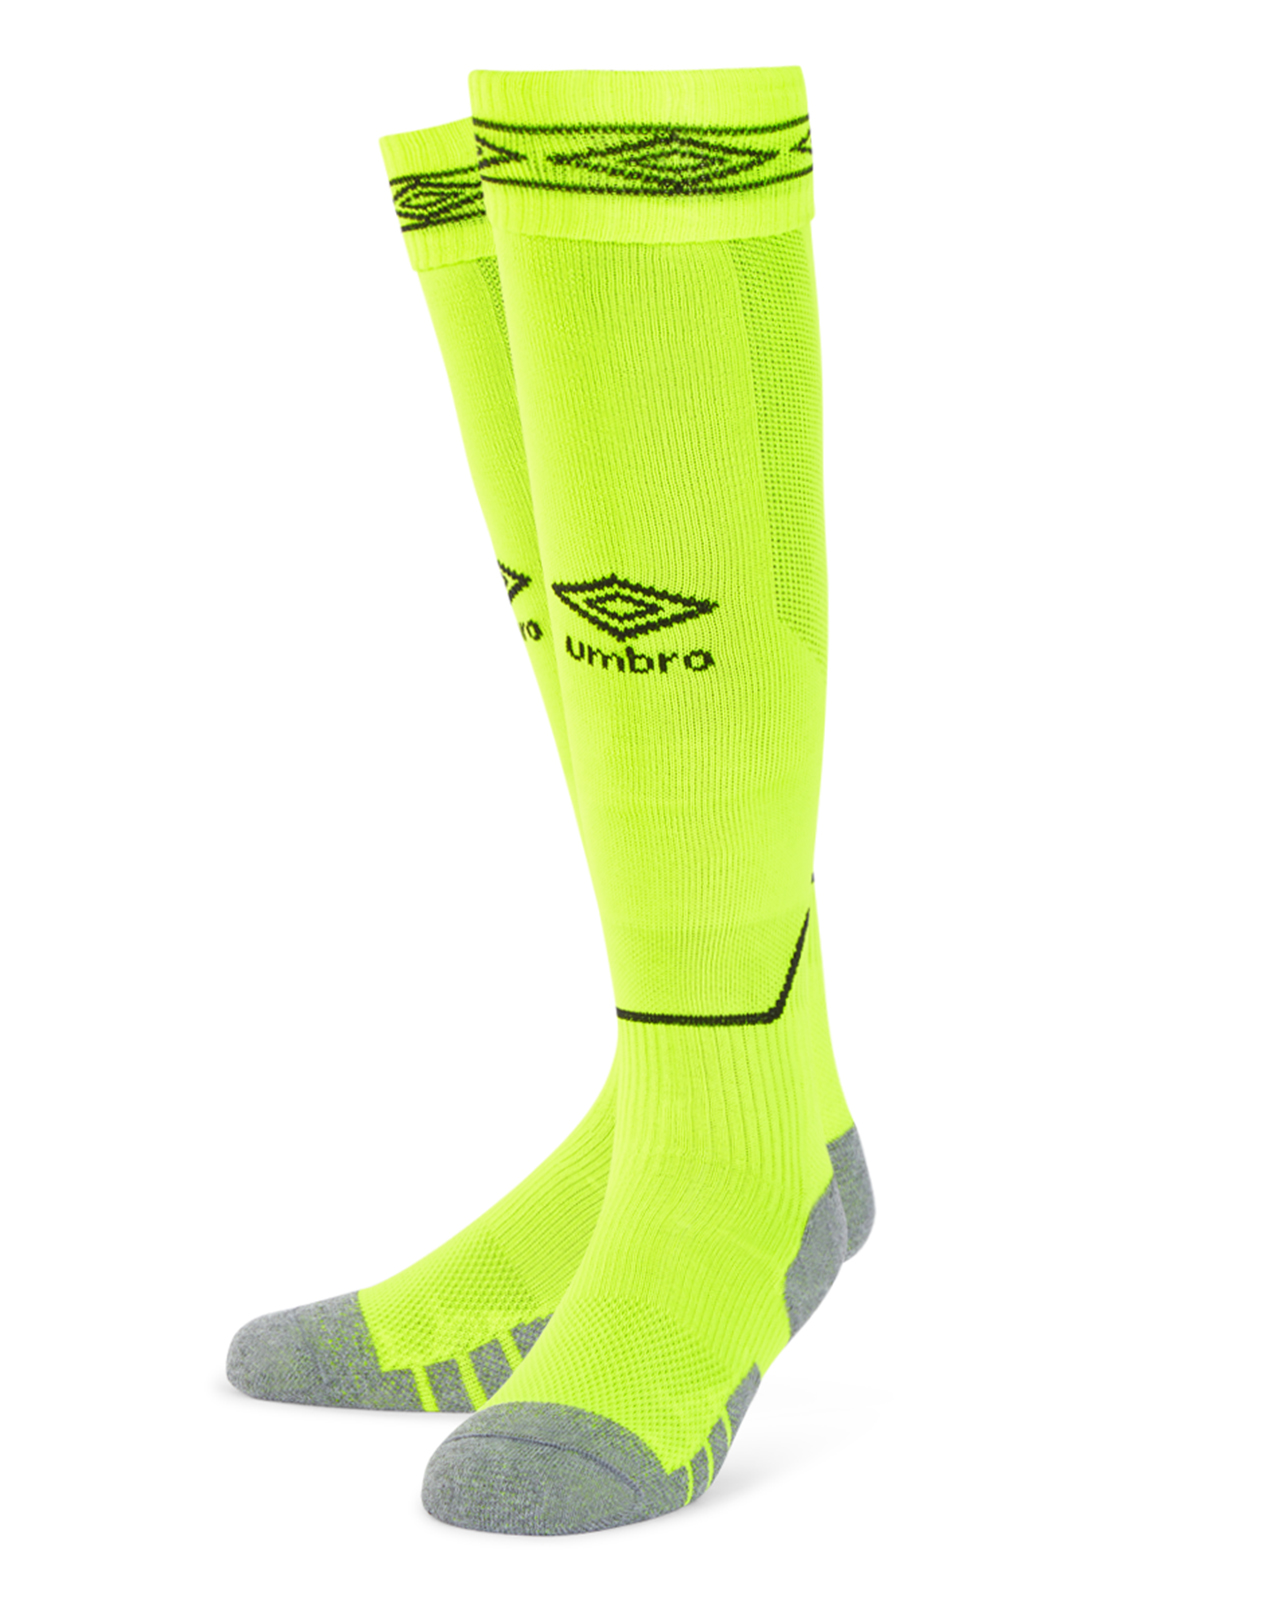 Umbro Diamond Top Socks in safety yellow with carbon Diamond turnover design